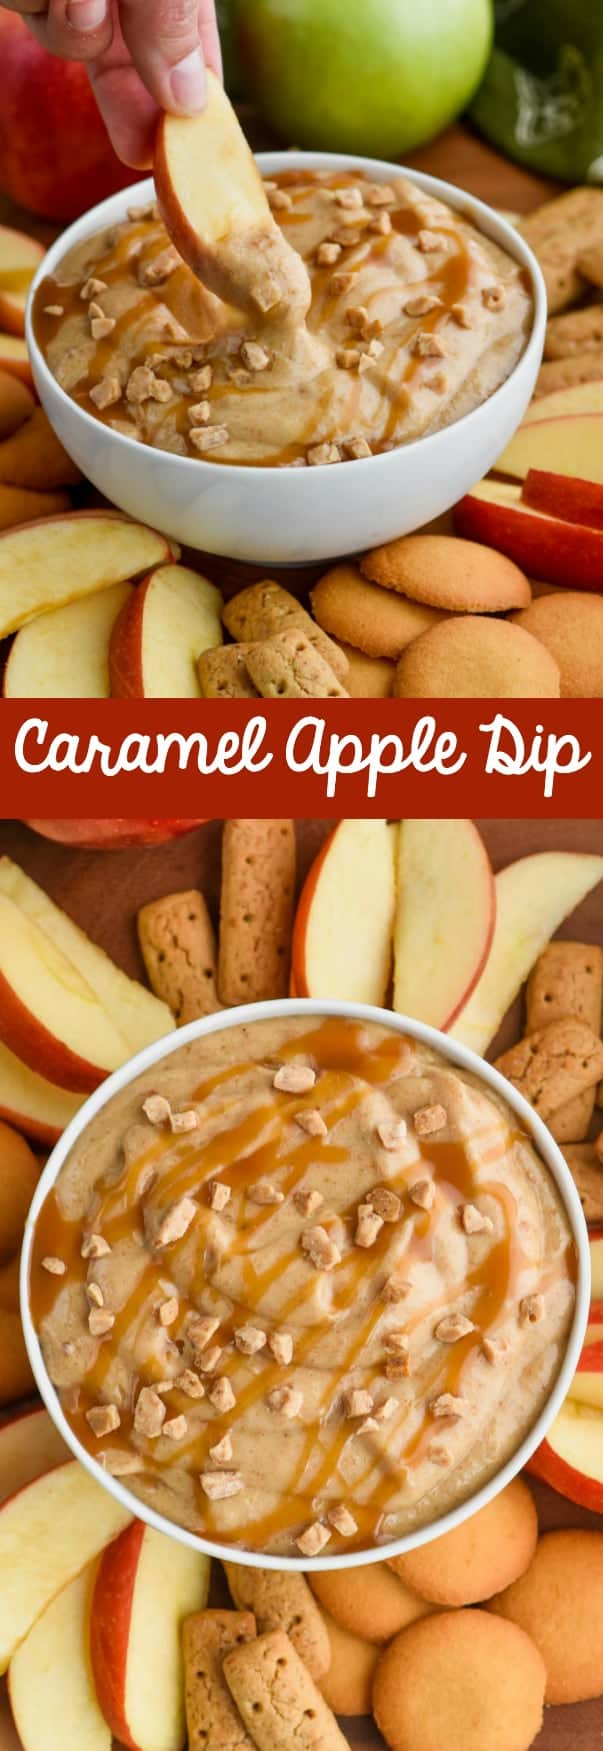 caramel apple dip appetizer in a bowl with an apple being dipped